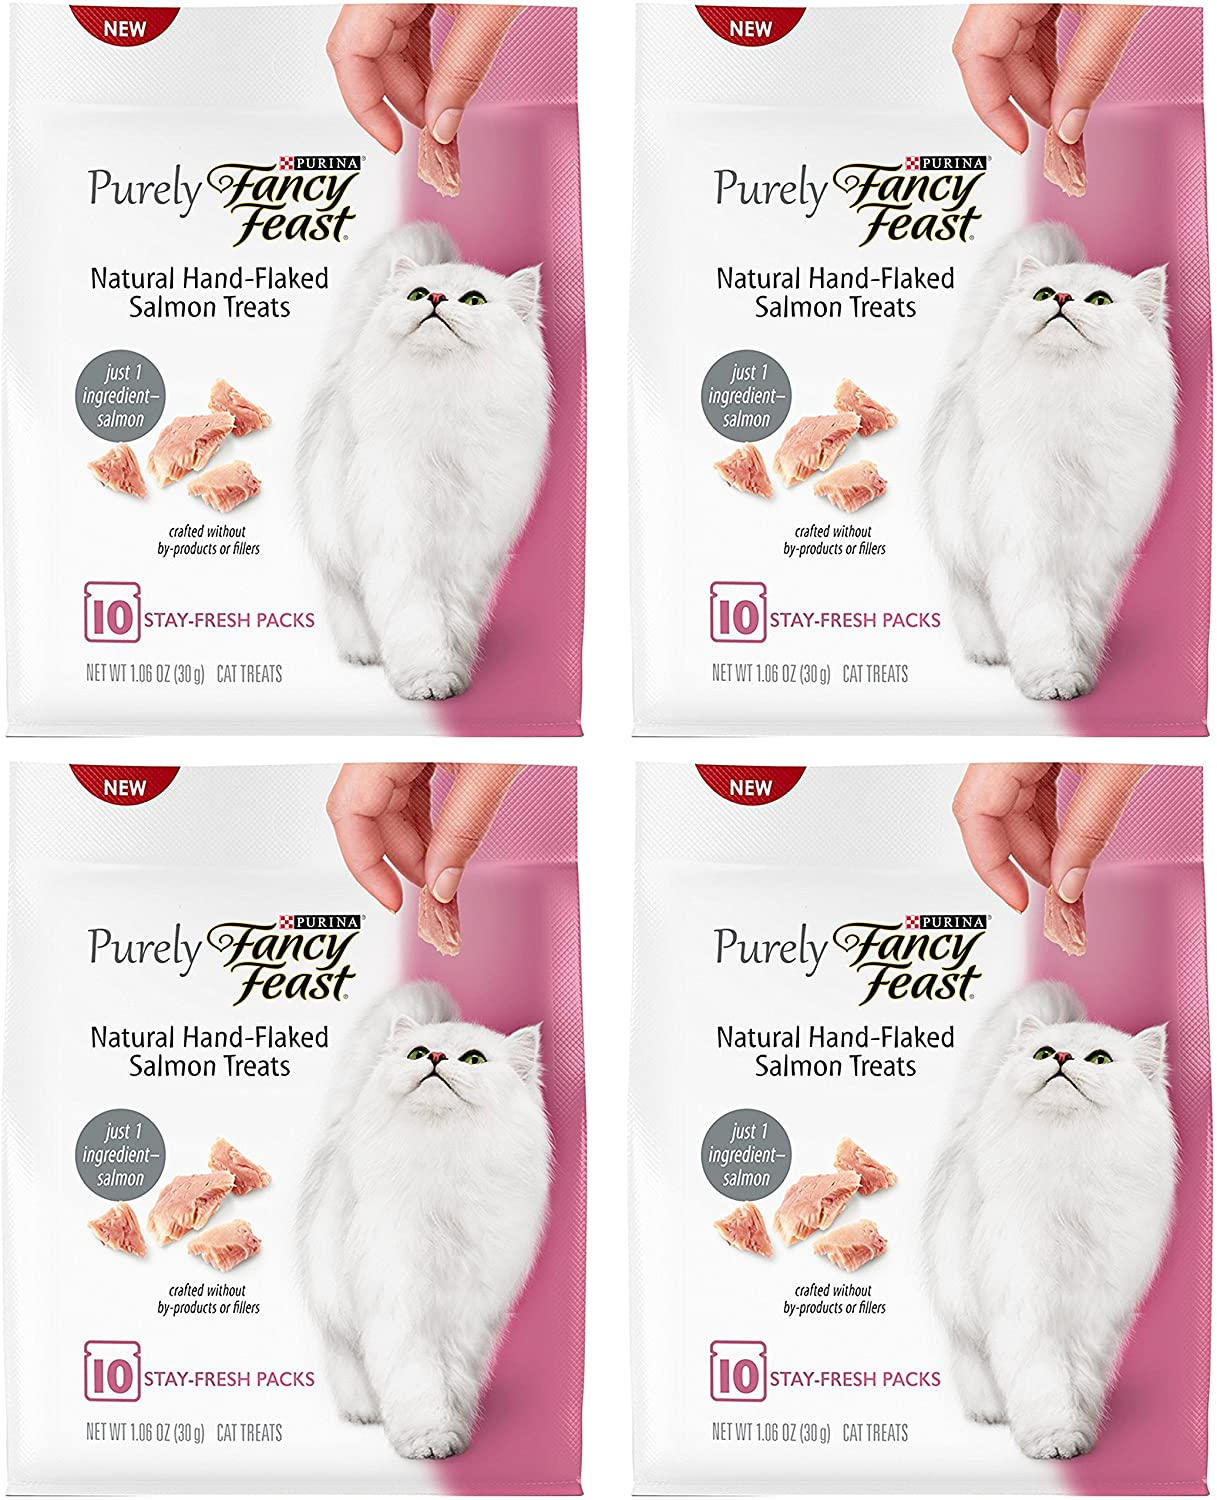 Fancy Feast Cat Treats - Natural Hand-Flaked Salmon Treats - 10 Count Treats Per Pouch - Pack of 4 Pouches